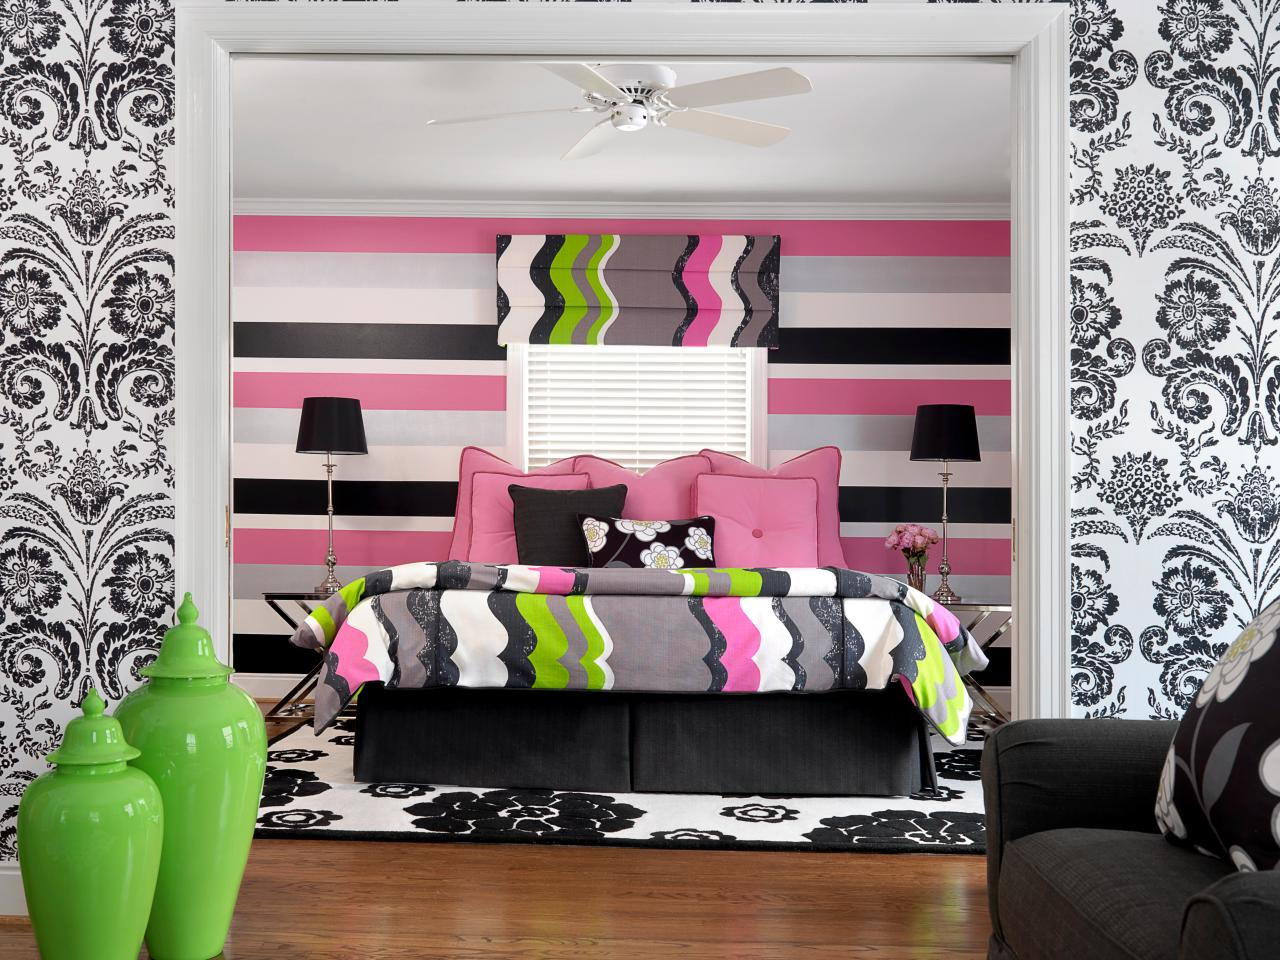 Teenage Bedroom Color Schemes Pictures Options Ideas HGTV - Bedroom wall design ideas for teenagers